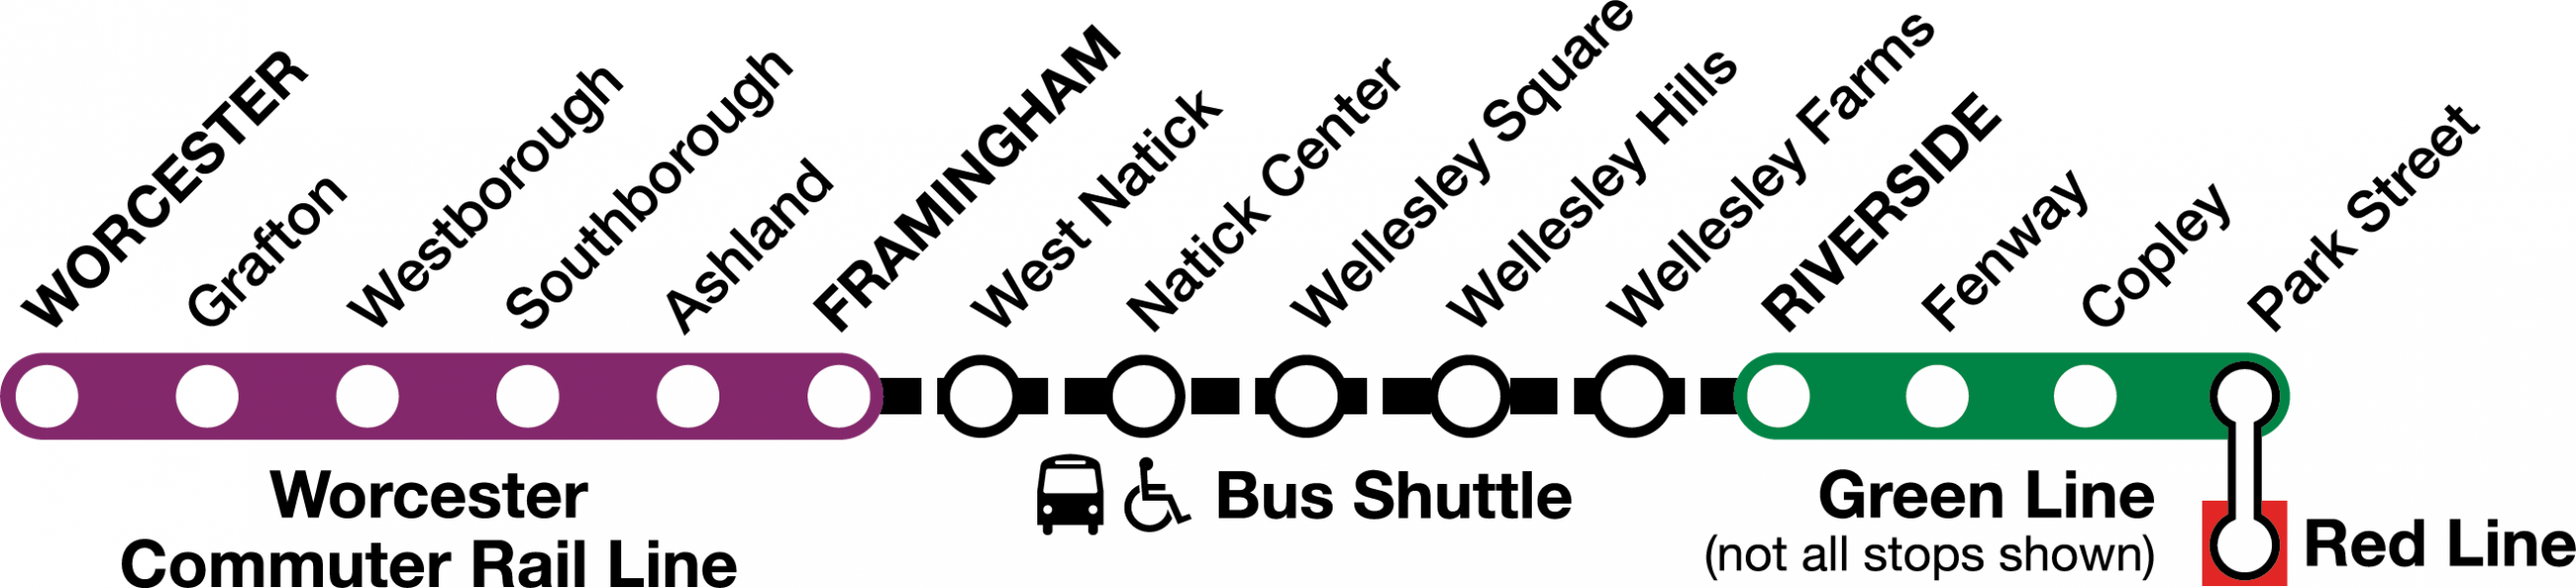 For weekends June 23 to July 29, bus shuttles replace train service between Framingham and South Station.